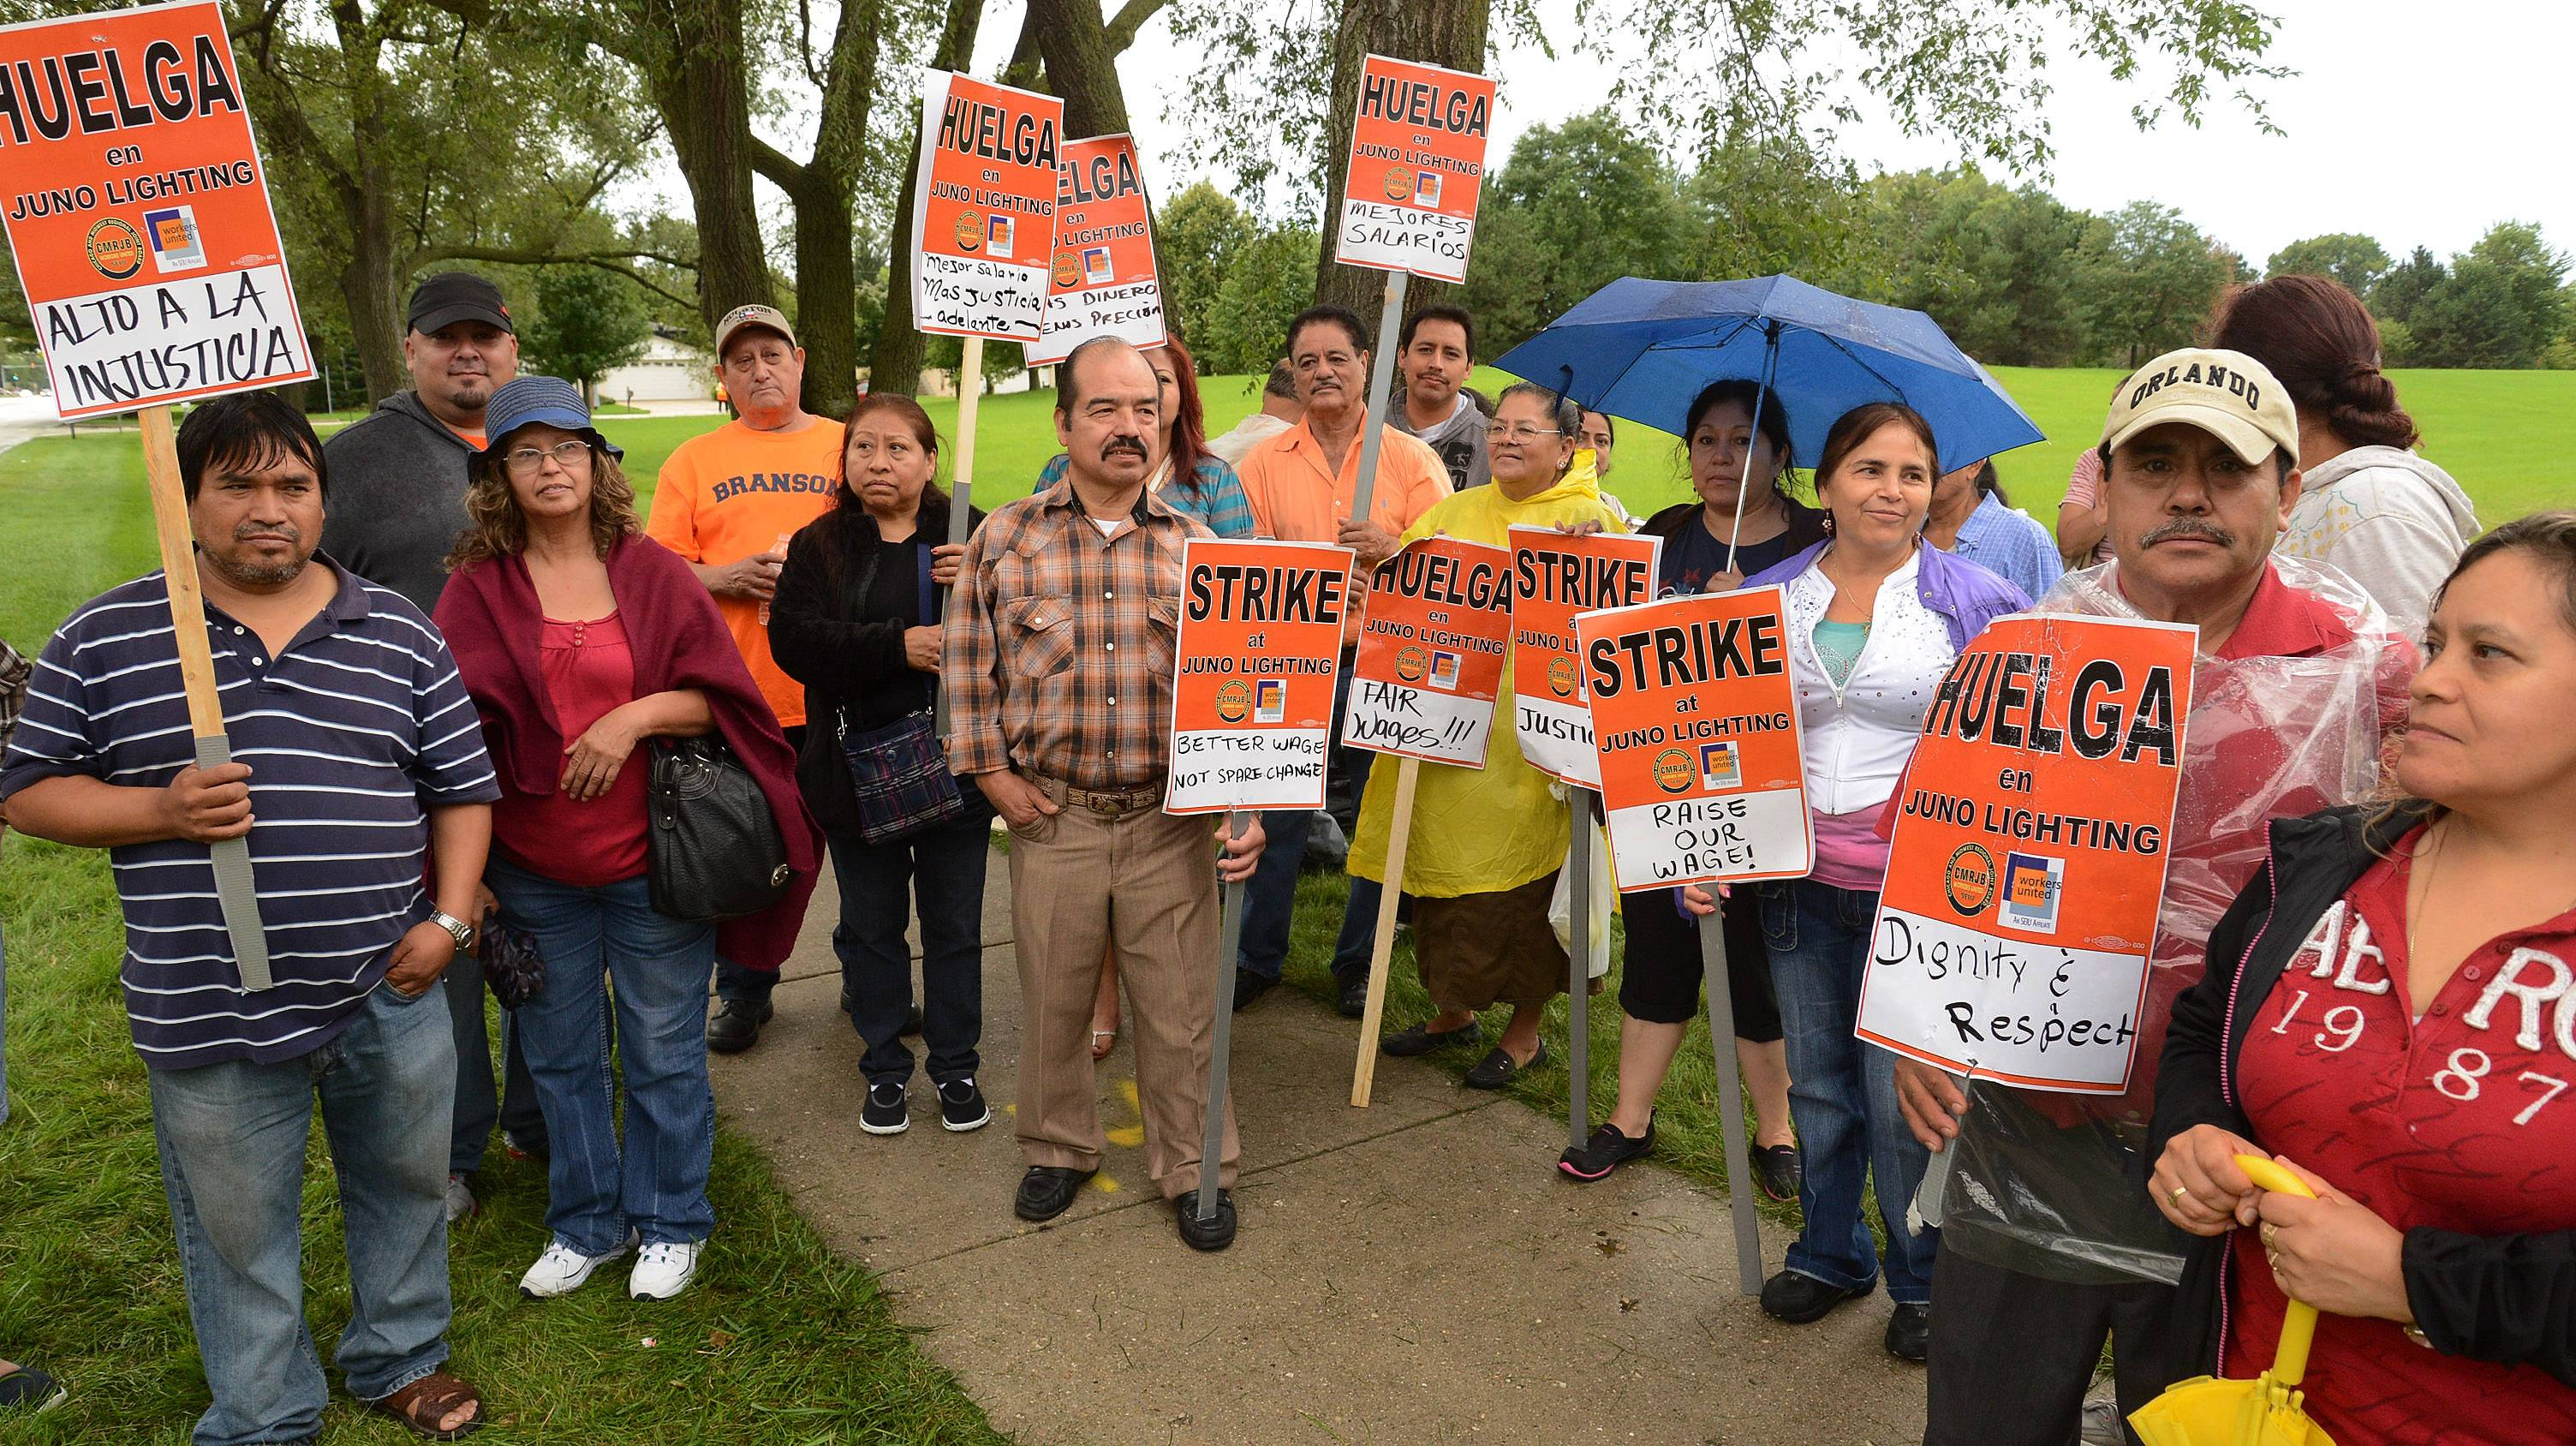 Some 400 workers at Juno Lighting Group in Des Plaines went on strike Wednesday, calling for higher wages. Many of them were picketing the company on Thursday.